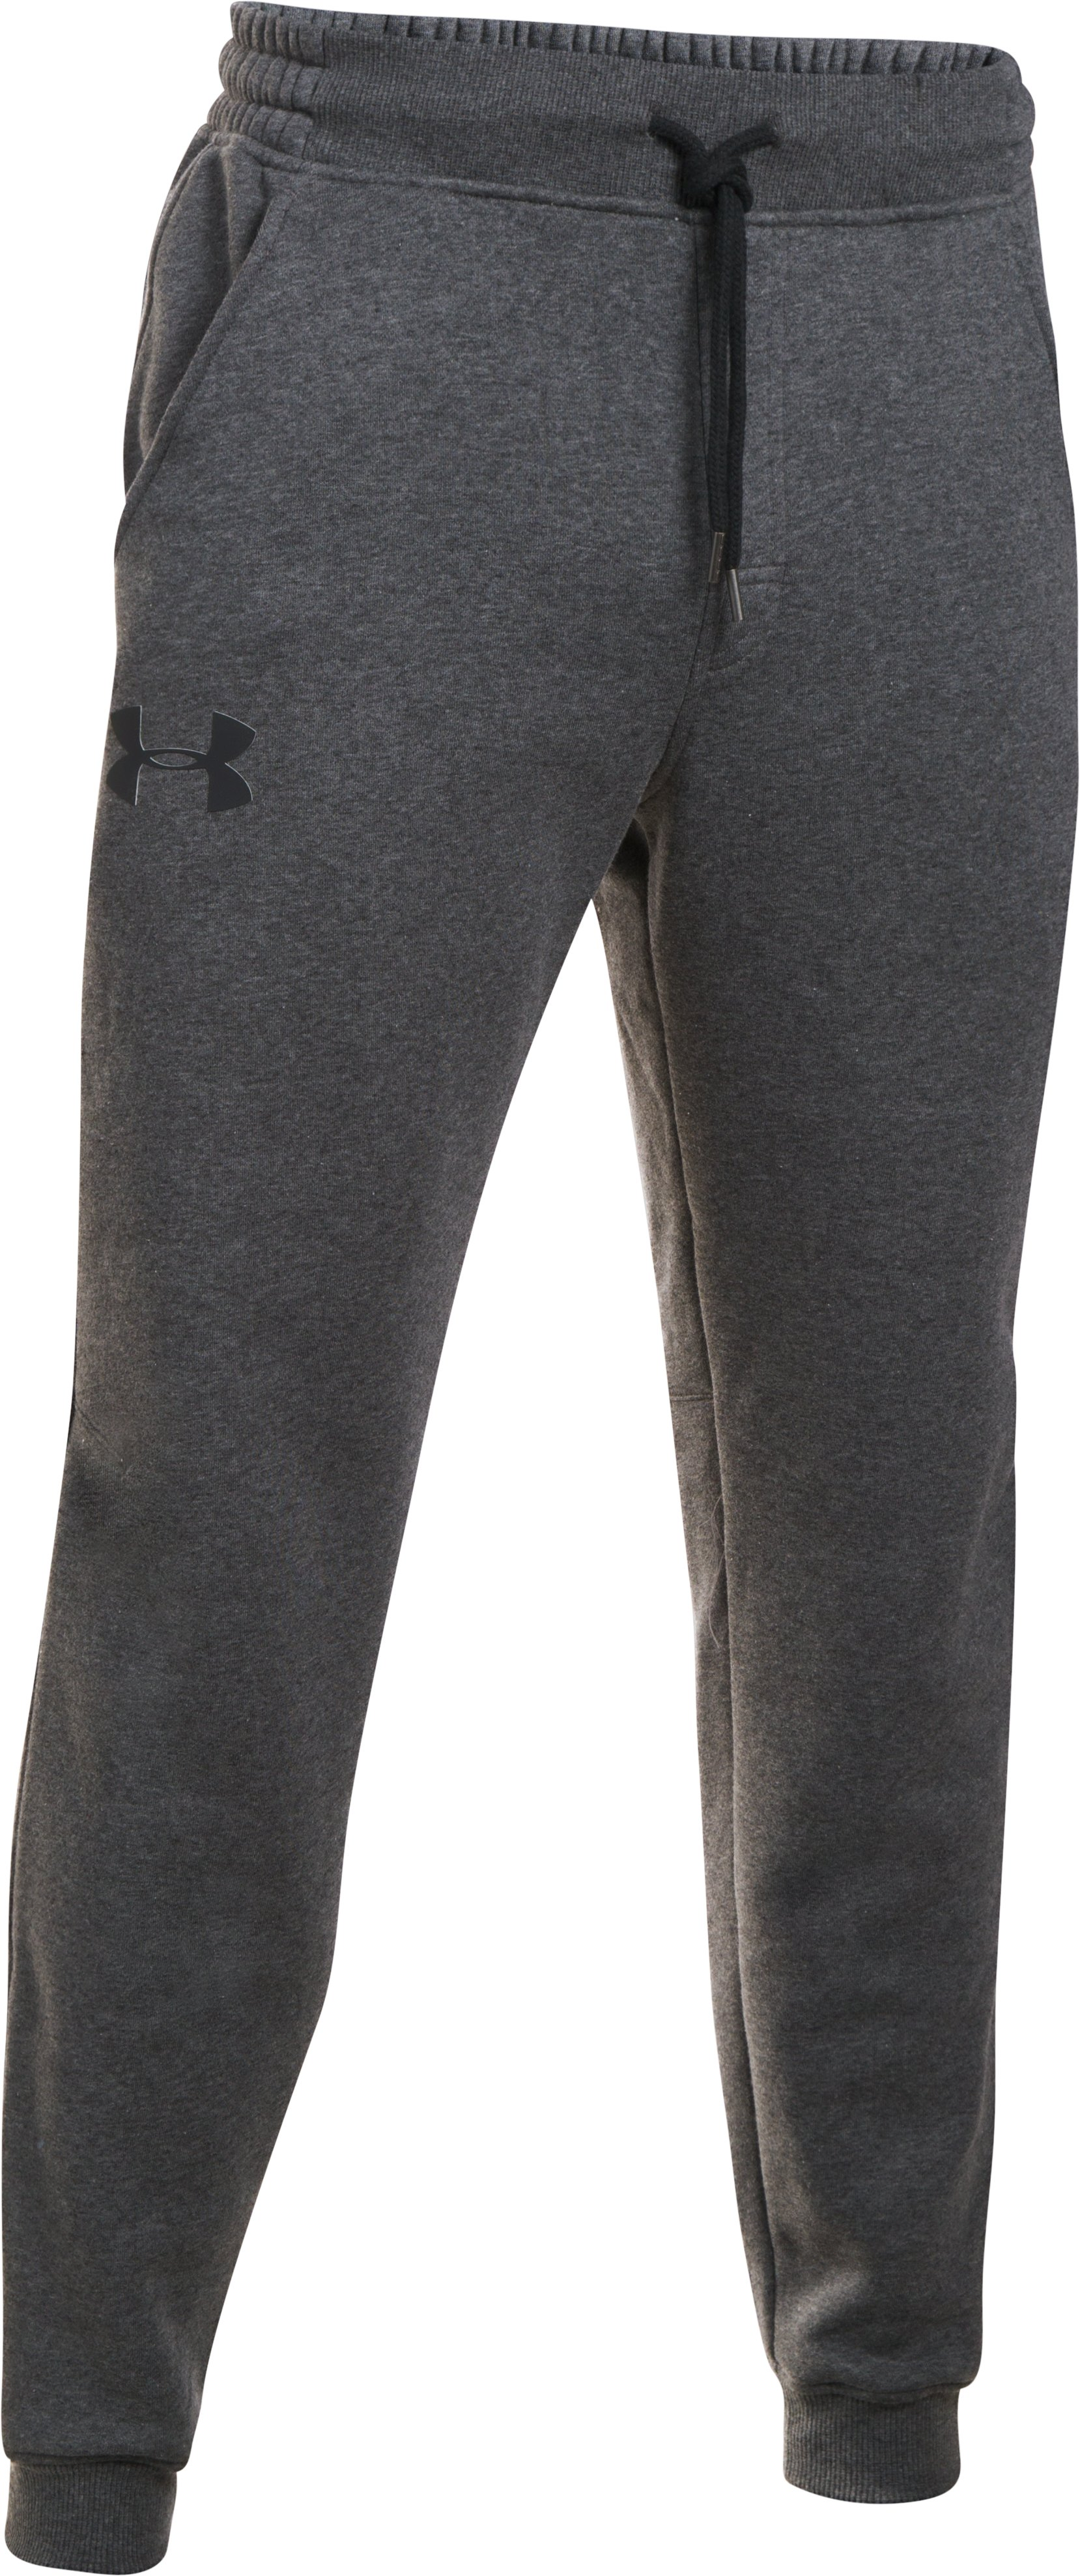 Men's UA Rival Fleece Joggers, Carbon Heather